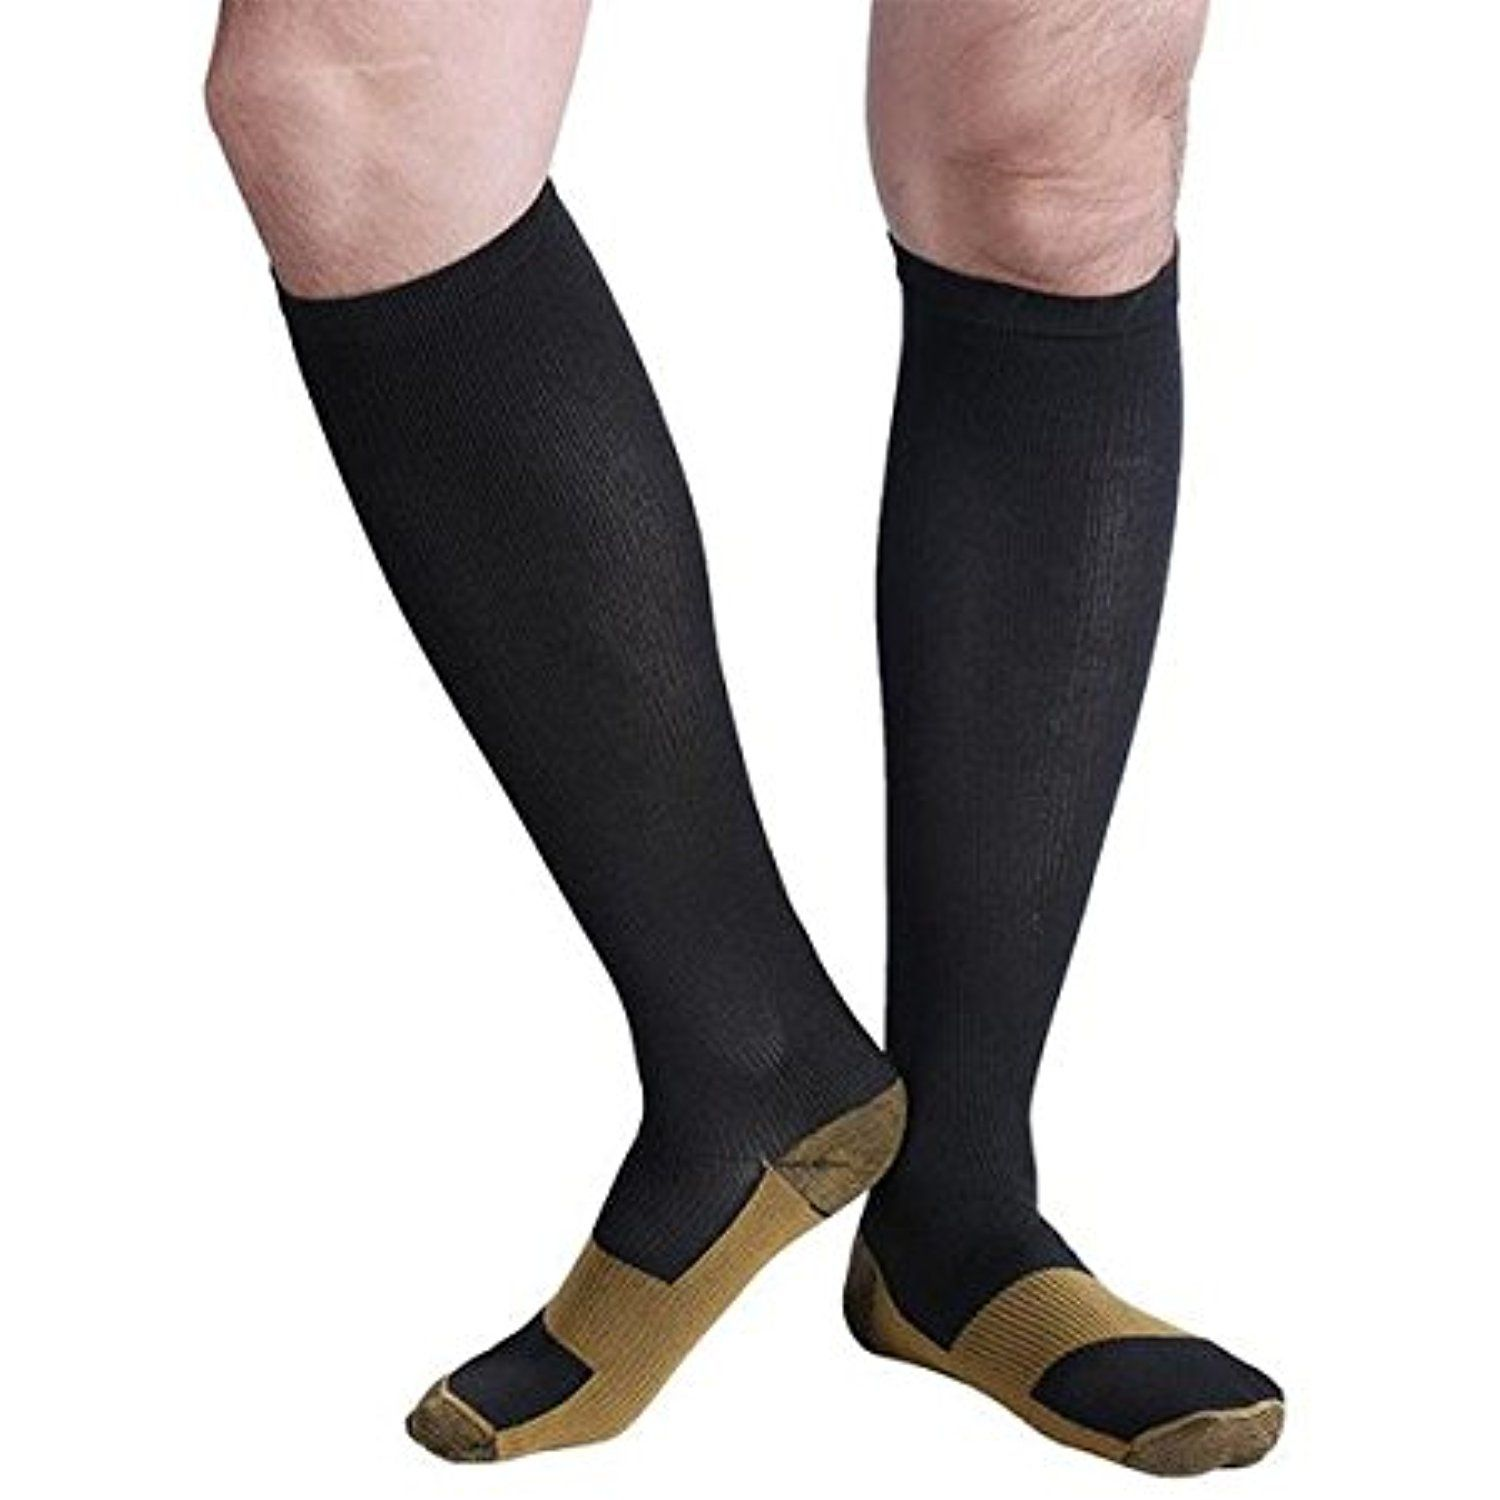 The Socks That Help Workout Recovery The Socks That Help Workout Recovery new photo